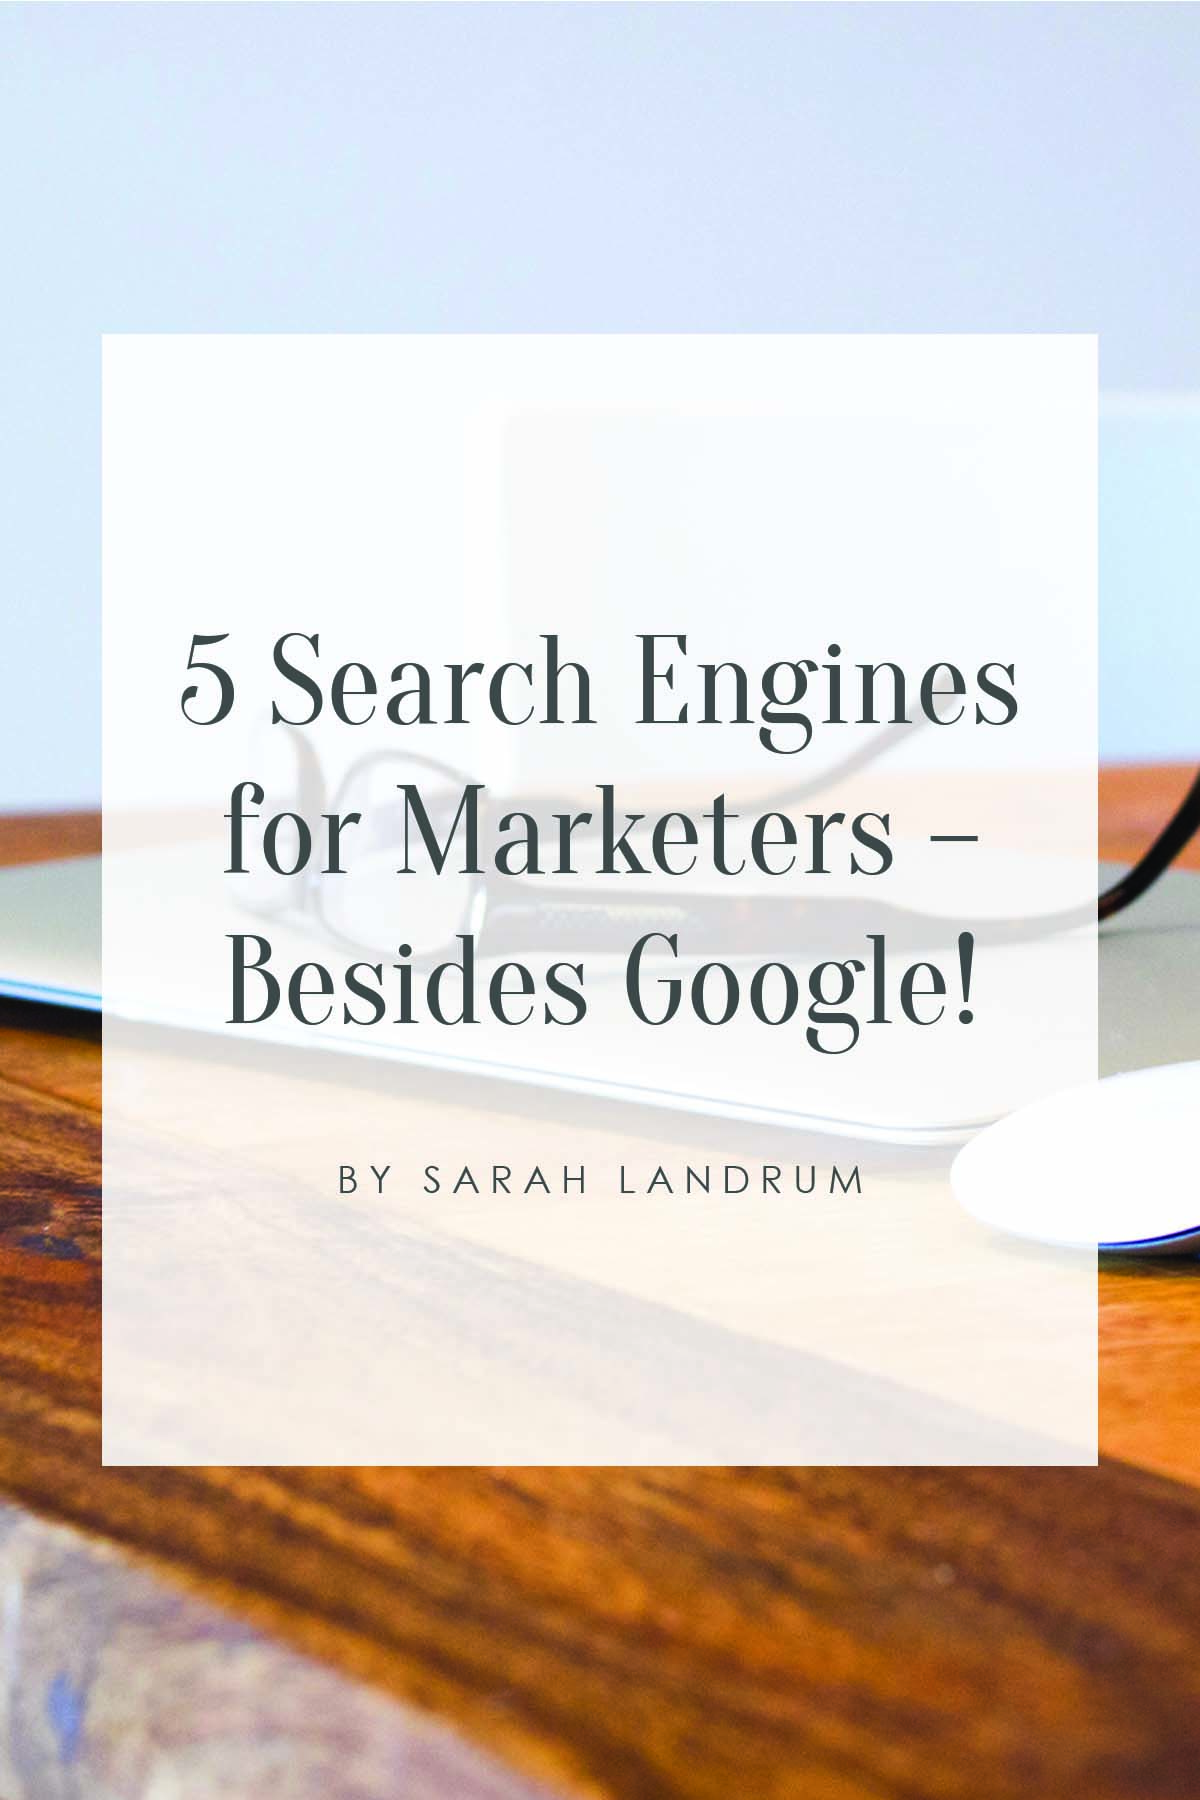 5 Search Engines for Marketers – Besides Google!